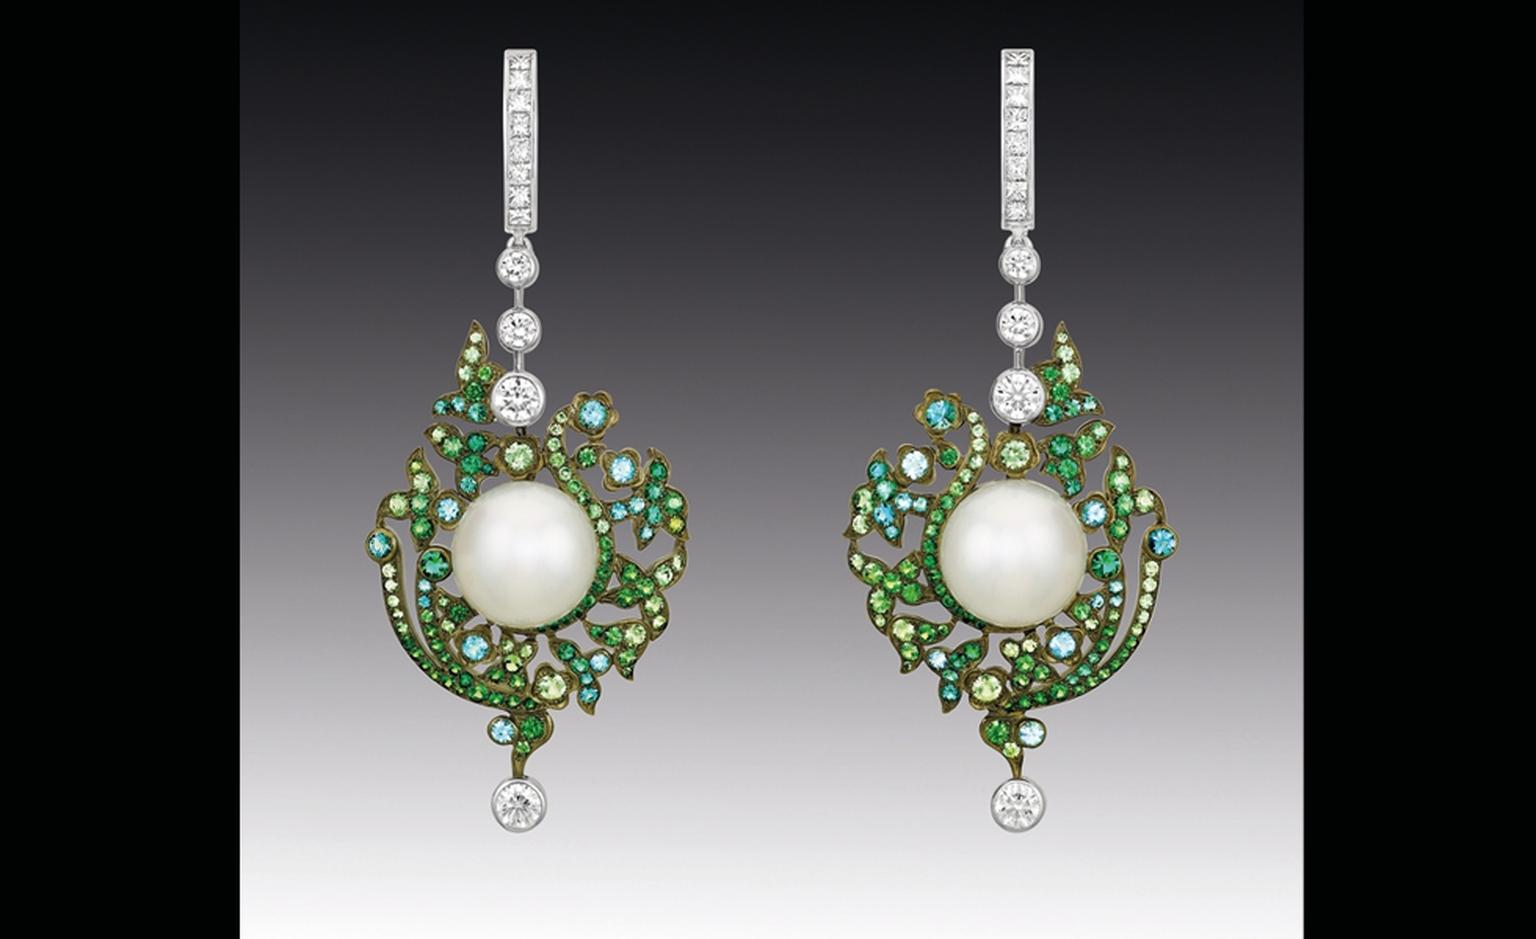 Chanel Contrastes collection: Jardin d'Hiver. Earrings in white gold, diamonds, tsavorites, Paraiba tourmaline and white pearls.